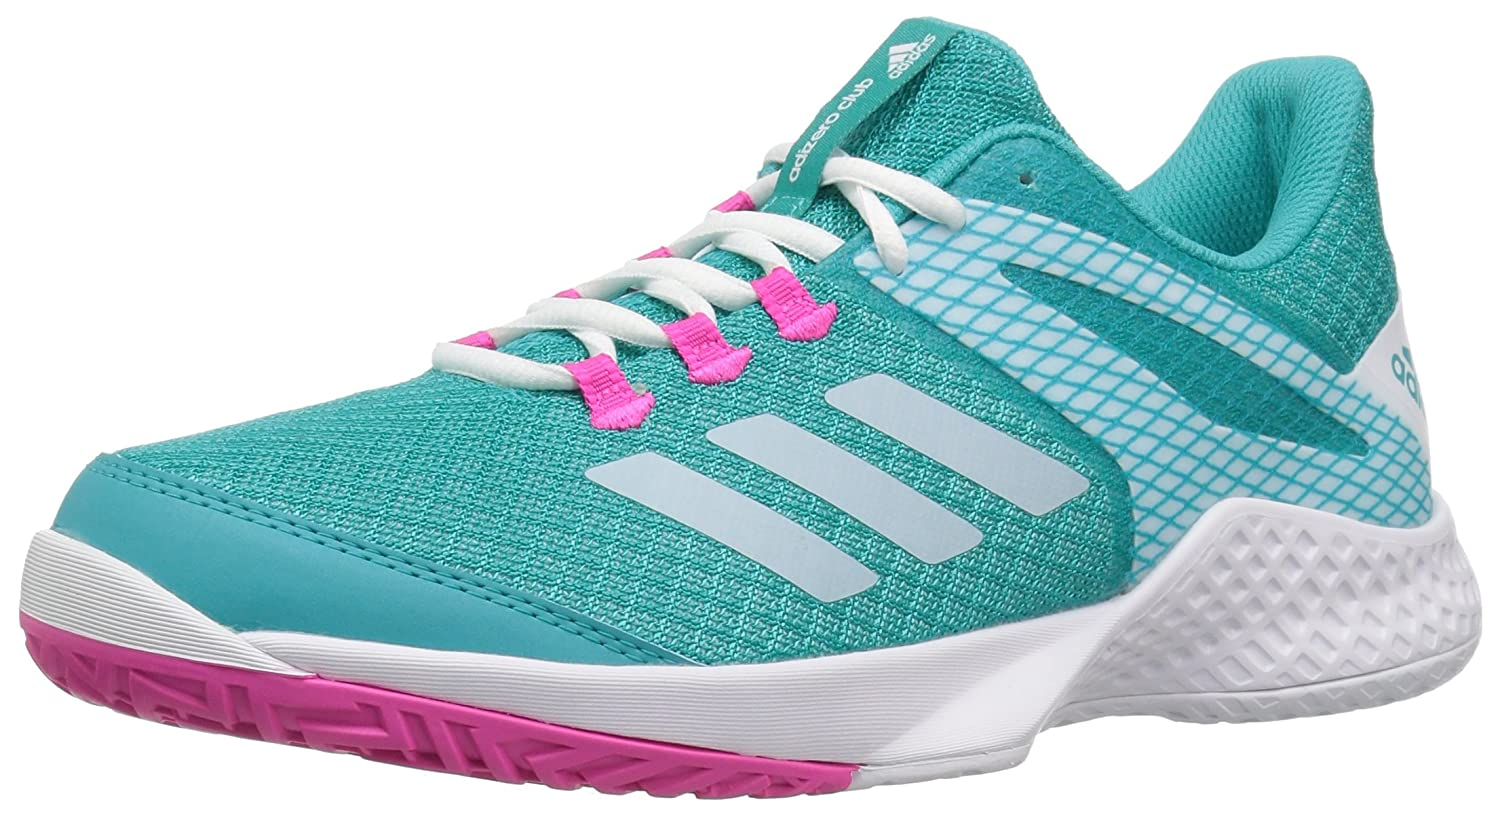 adidas Women's Adizero Club 2 Tennis Shoe B077X4Y7B8 10 B(M) US|Hi-res Aqua/White/Shock Pink